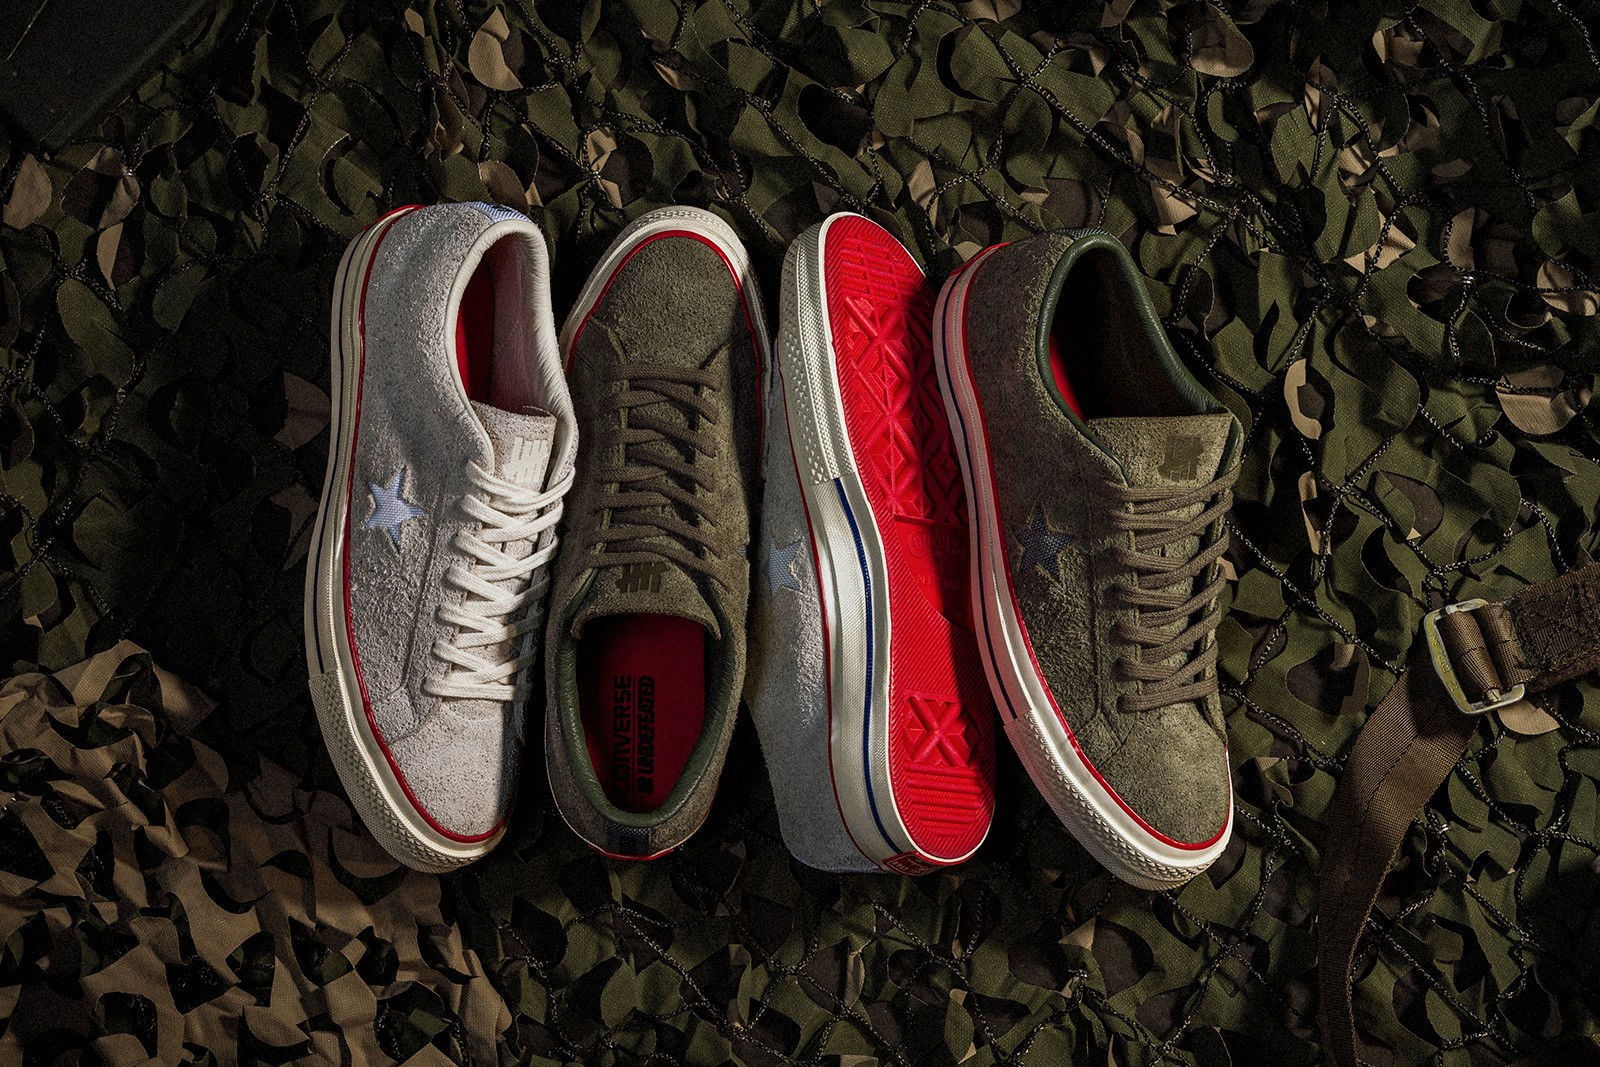 UNDEFEATED x Converse One Star Sneaker